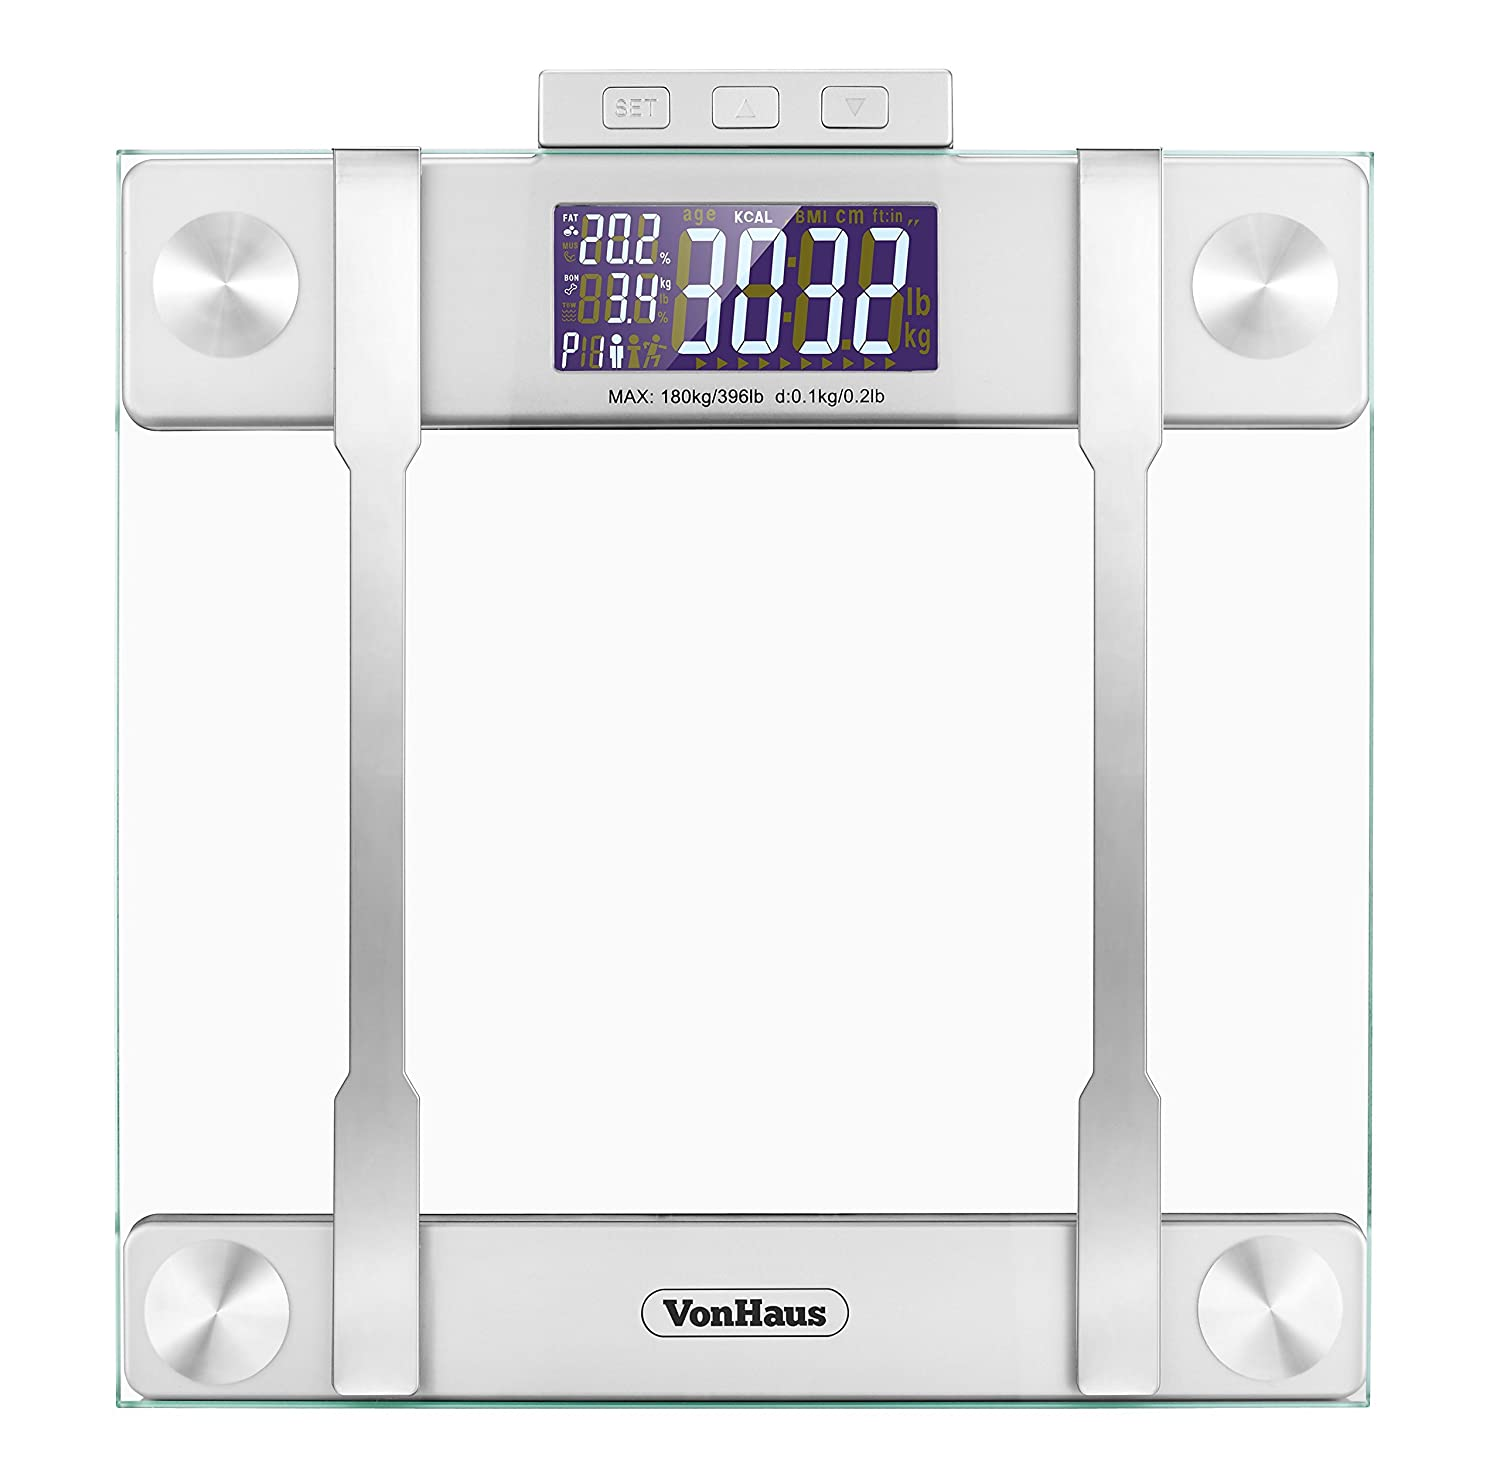 Top Bathroom Scales 2017: List And Reviews 2016-2017 On